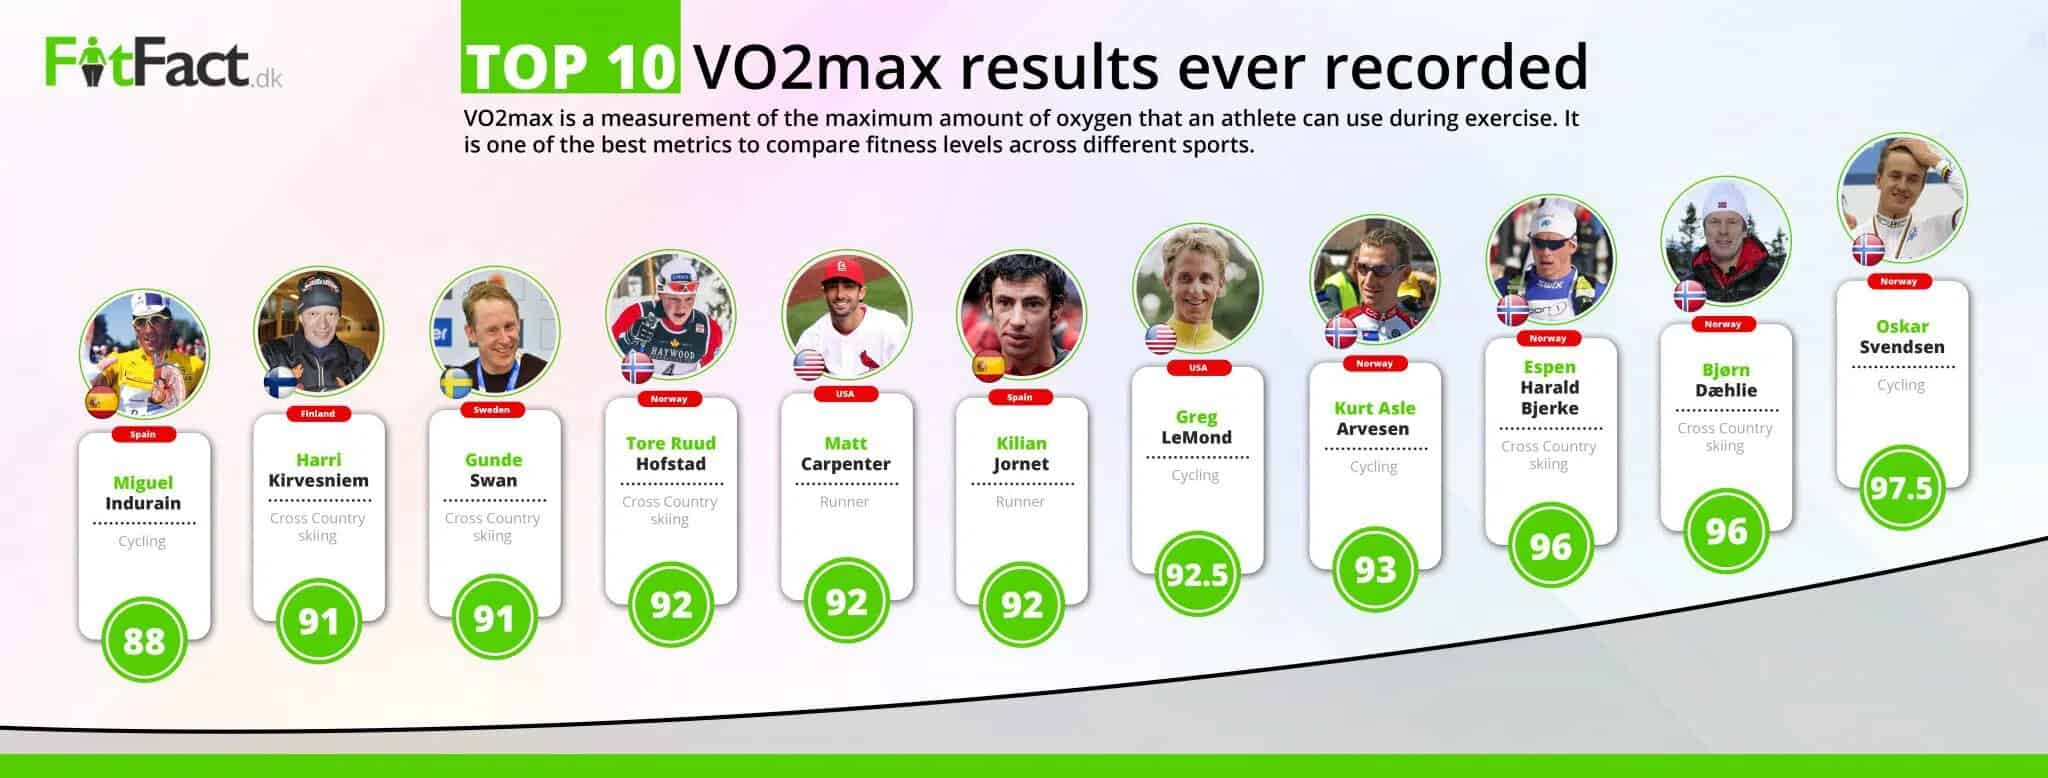 Top 10 VO2max results ever recorded